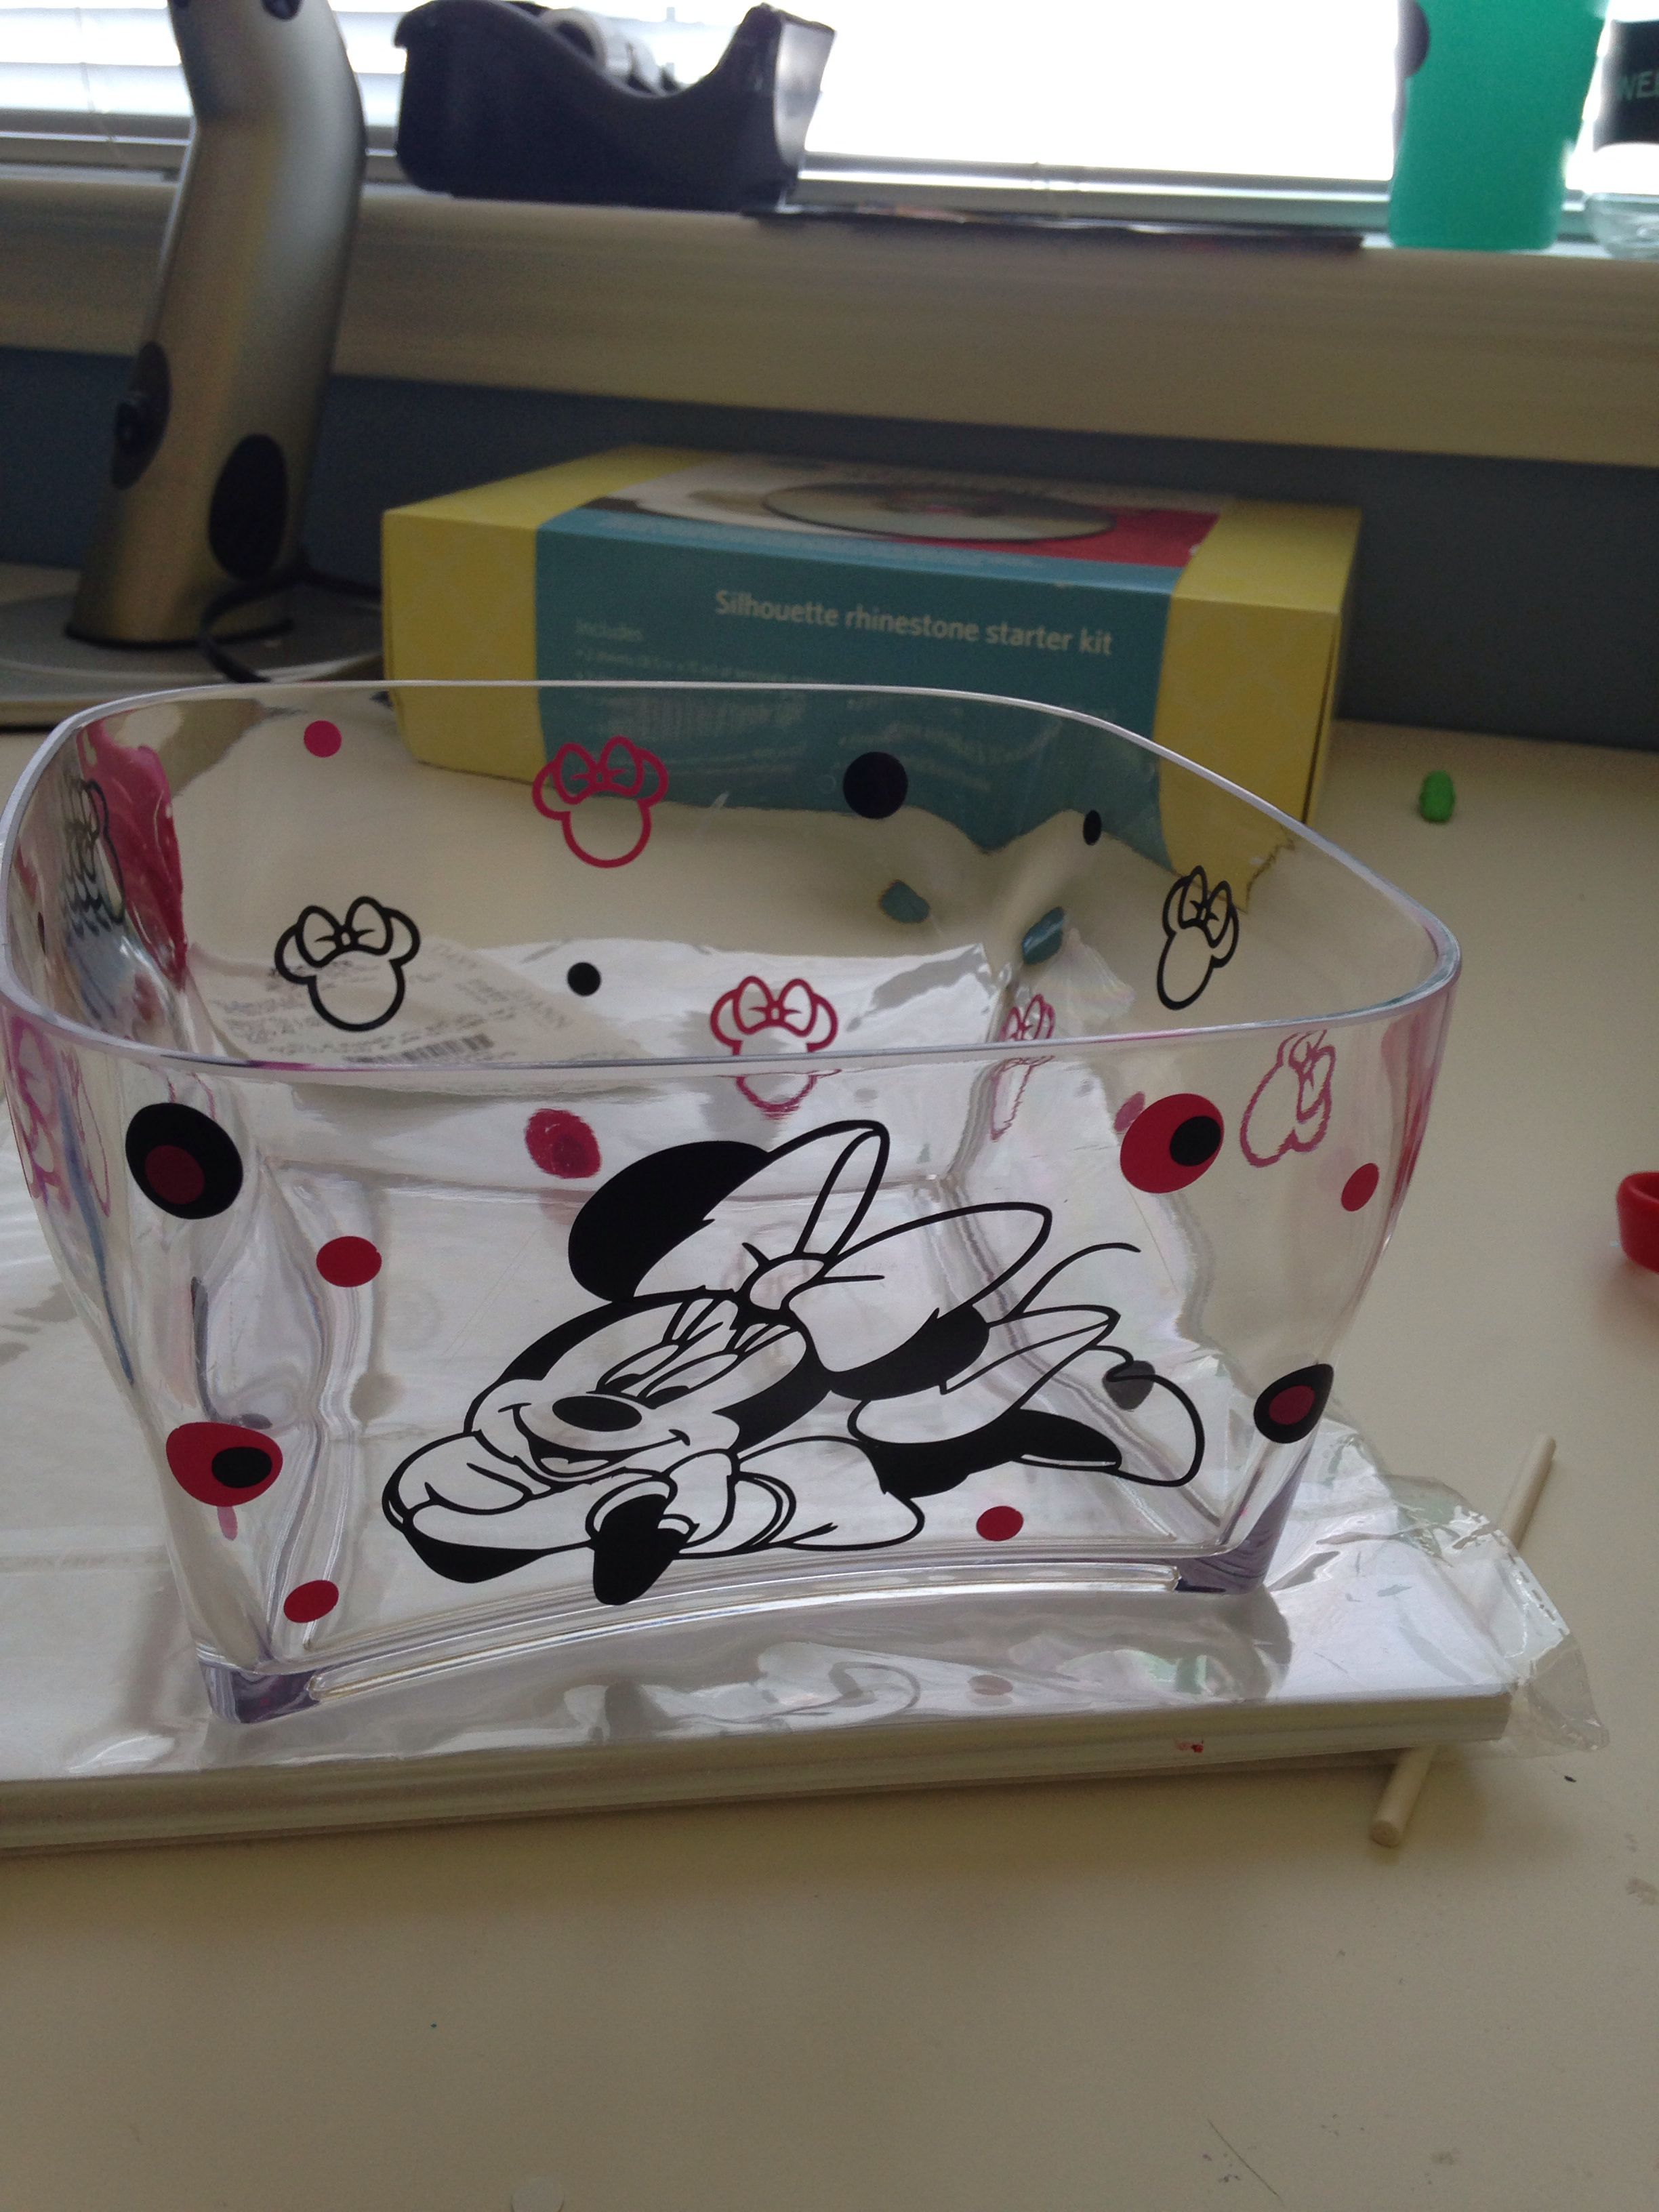 Minnie Mouse Vinyl Cut Silhouette Projects Ideas